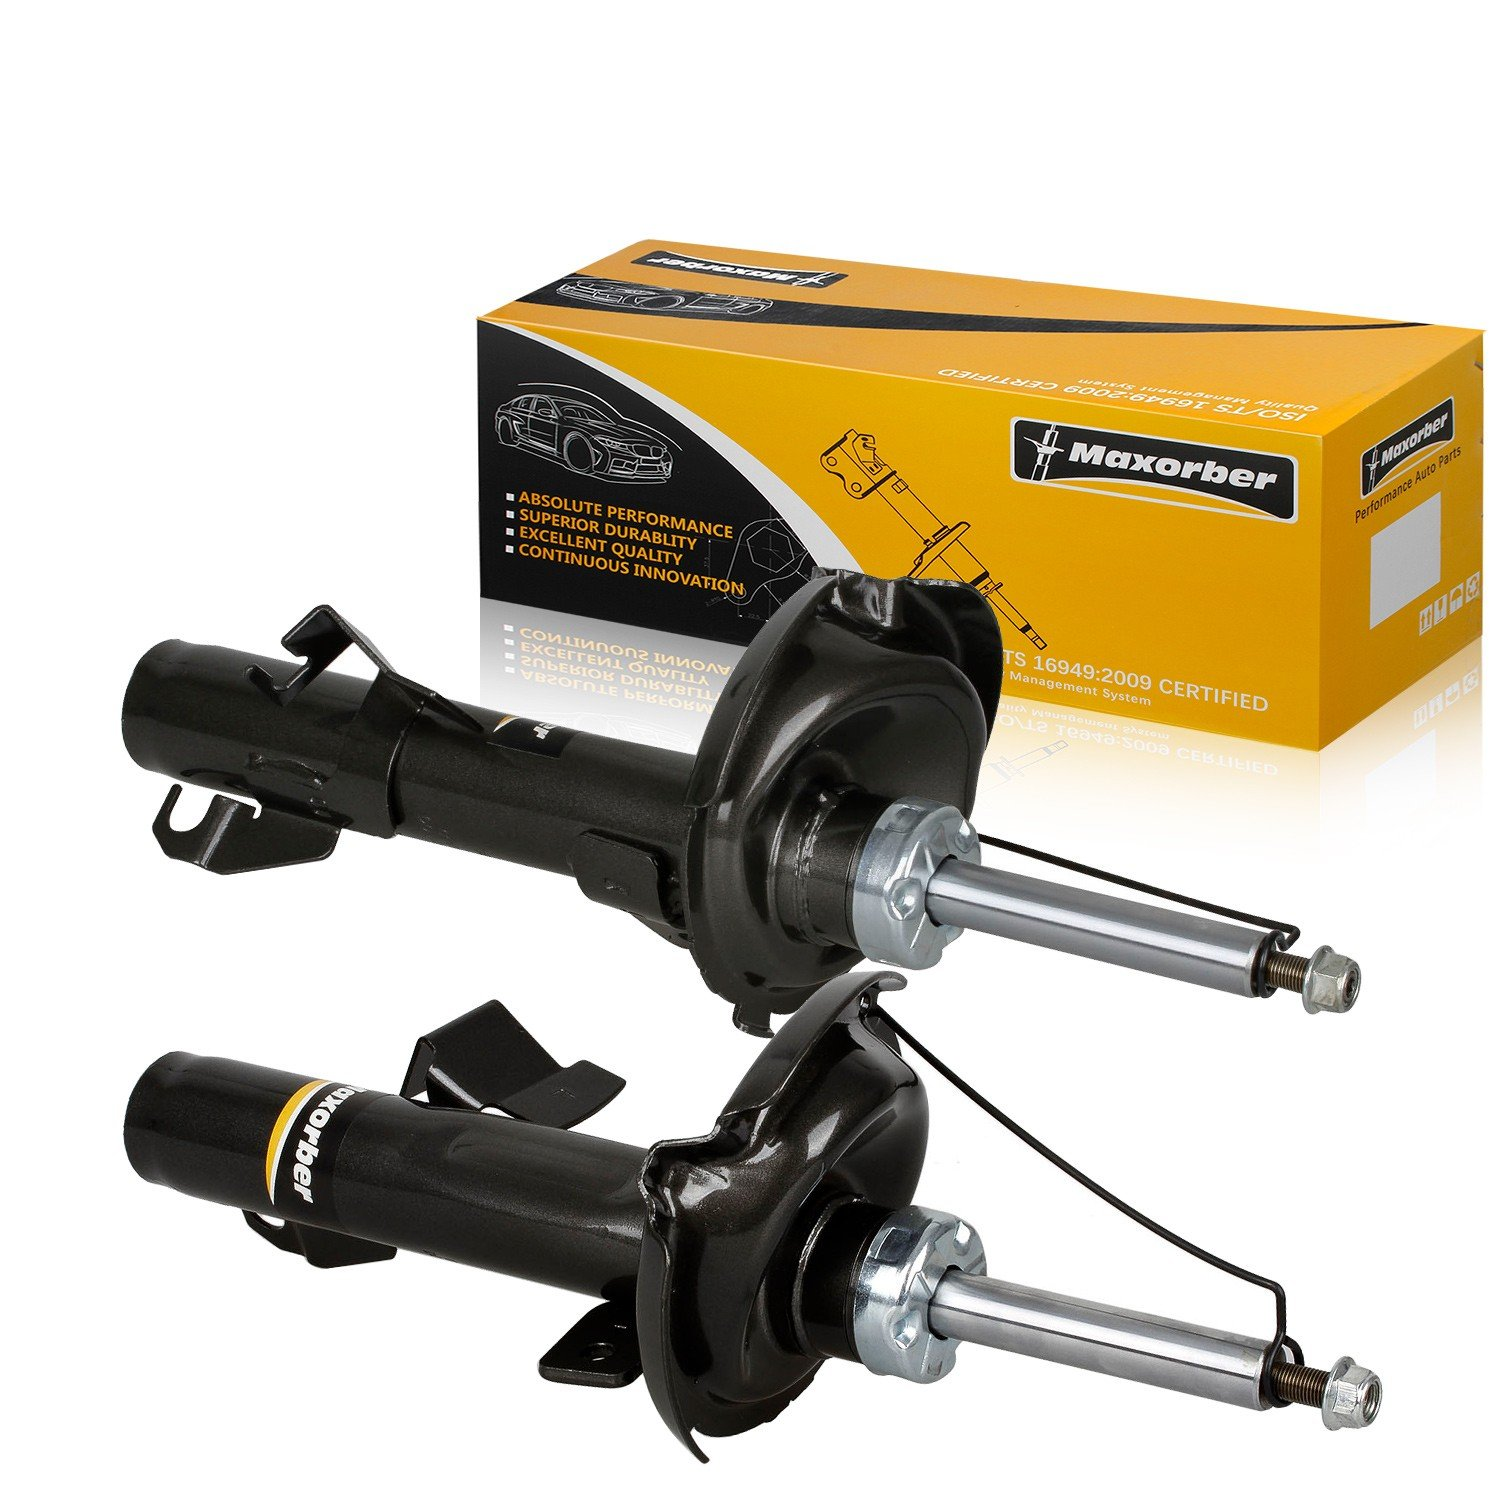 Maxorber Rear Left /& Right Struts Shocks Absorber Kit Compatible with Honda Odyssey 2005 2006 2007 2008 2009 2010